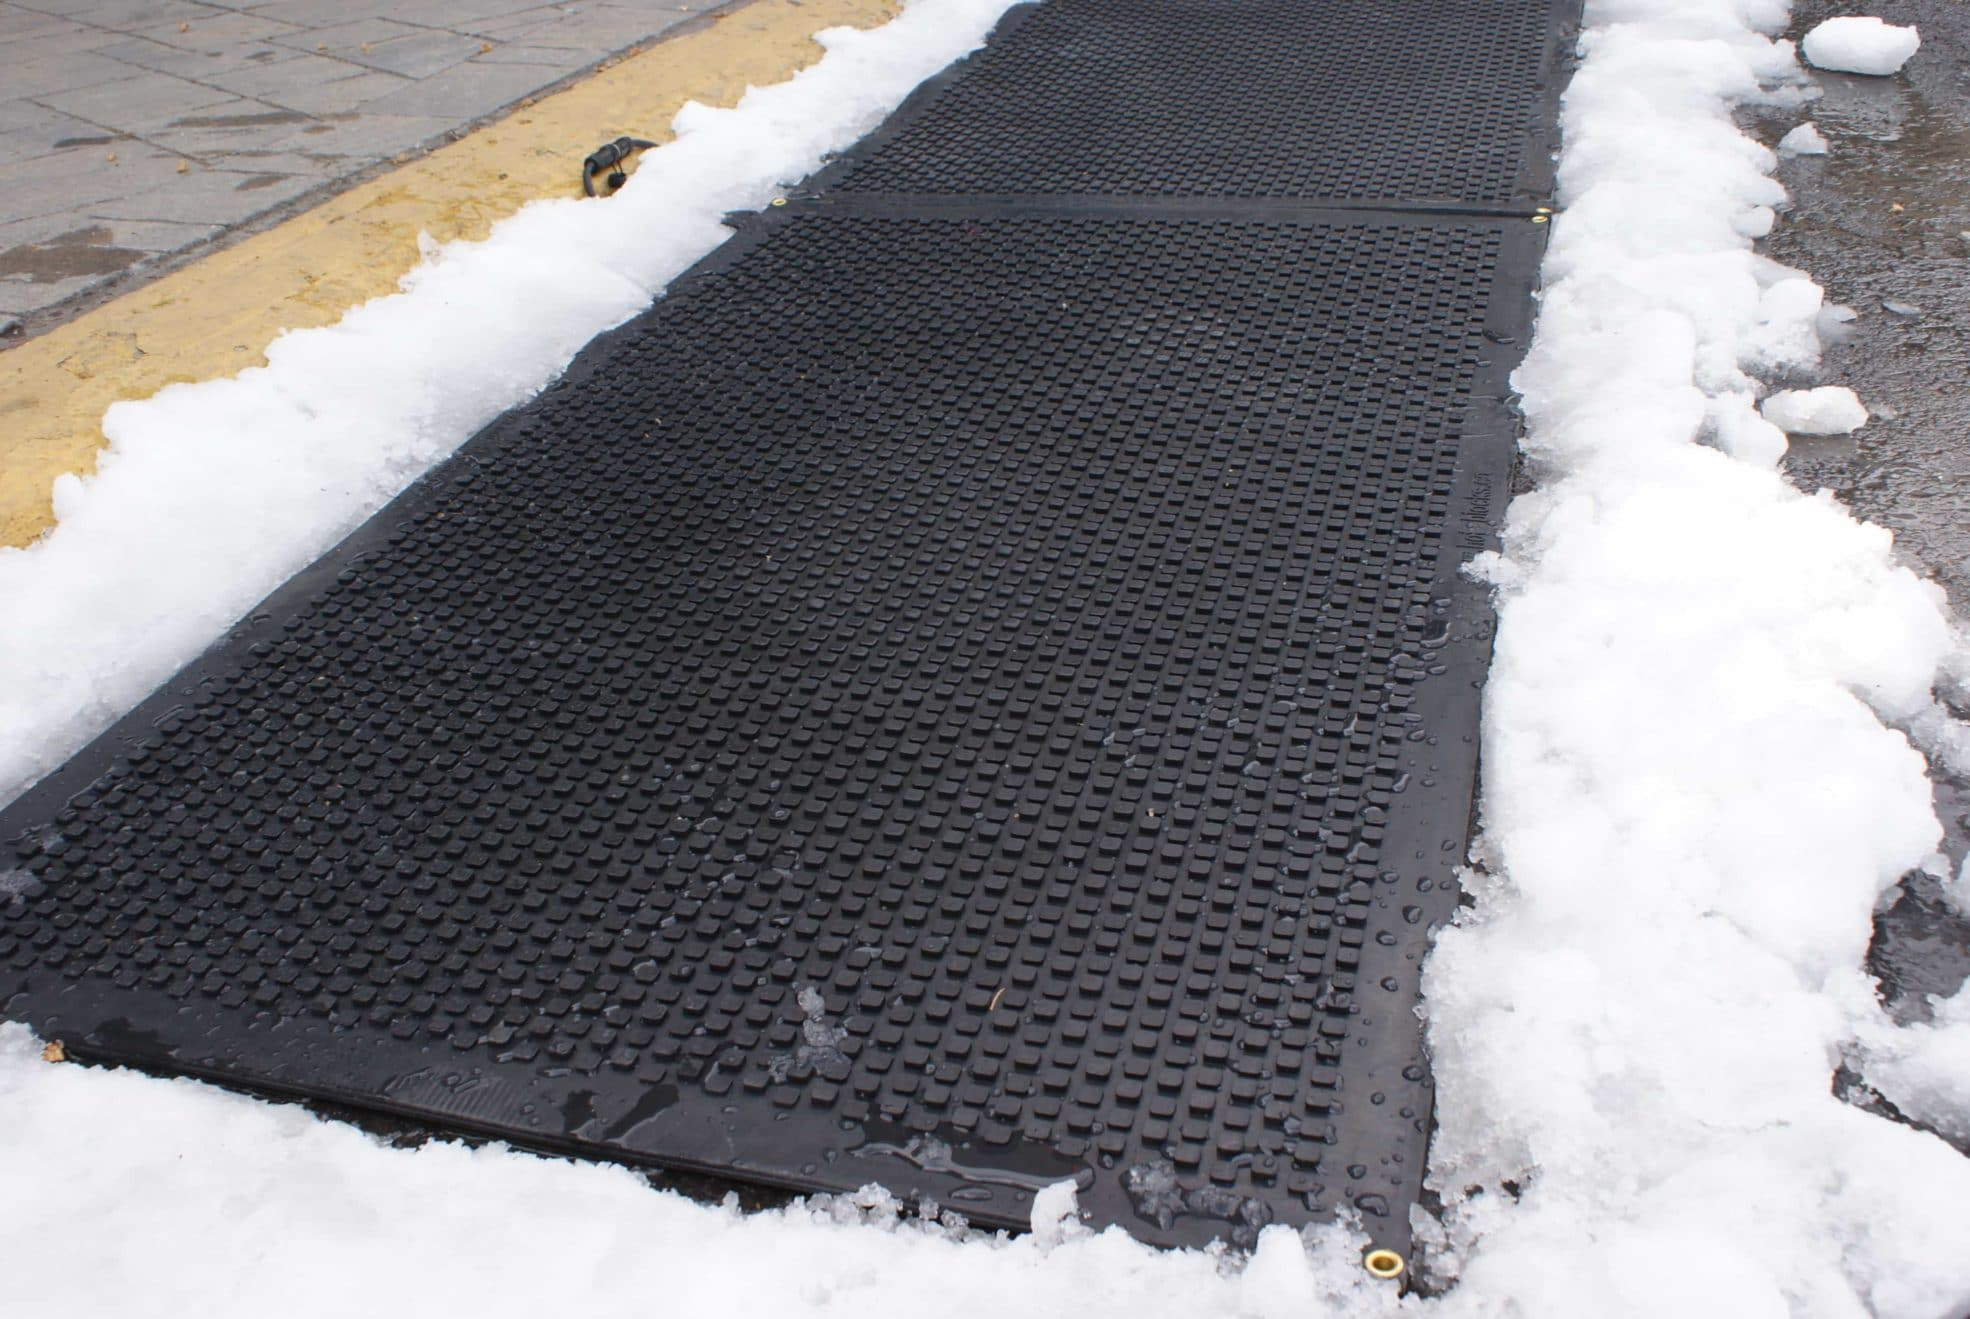 Heating Mat melting through snow on Winter day